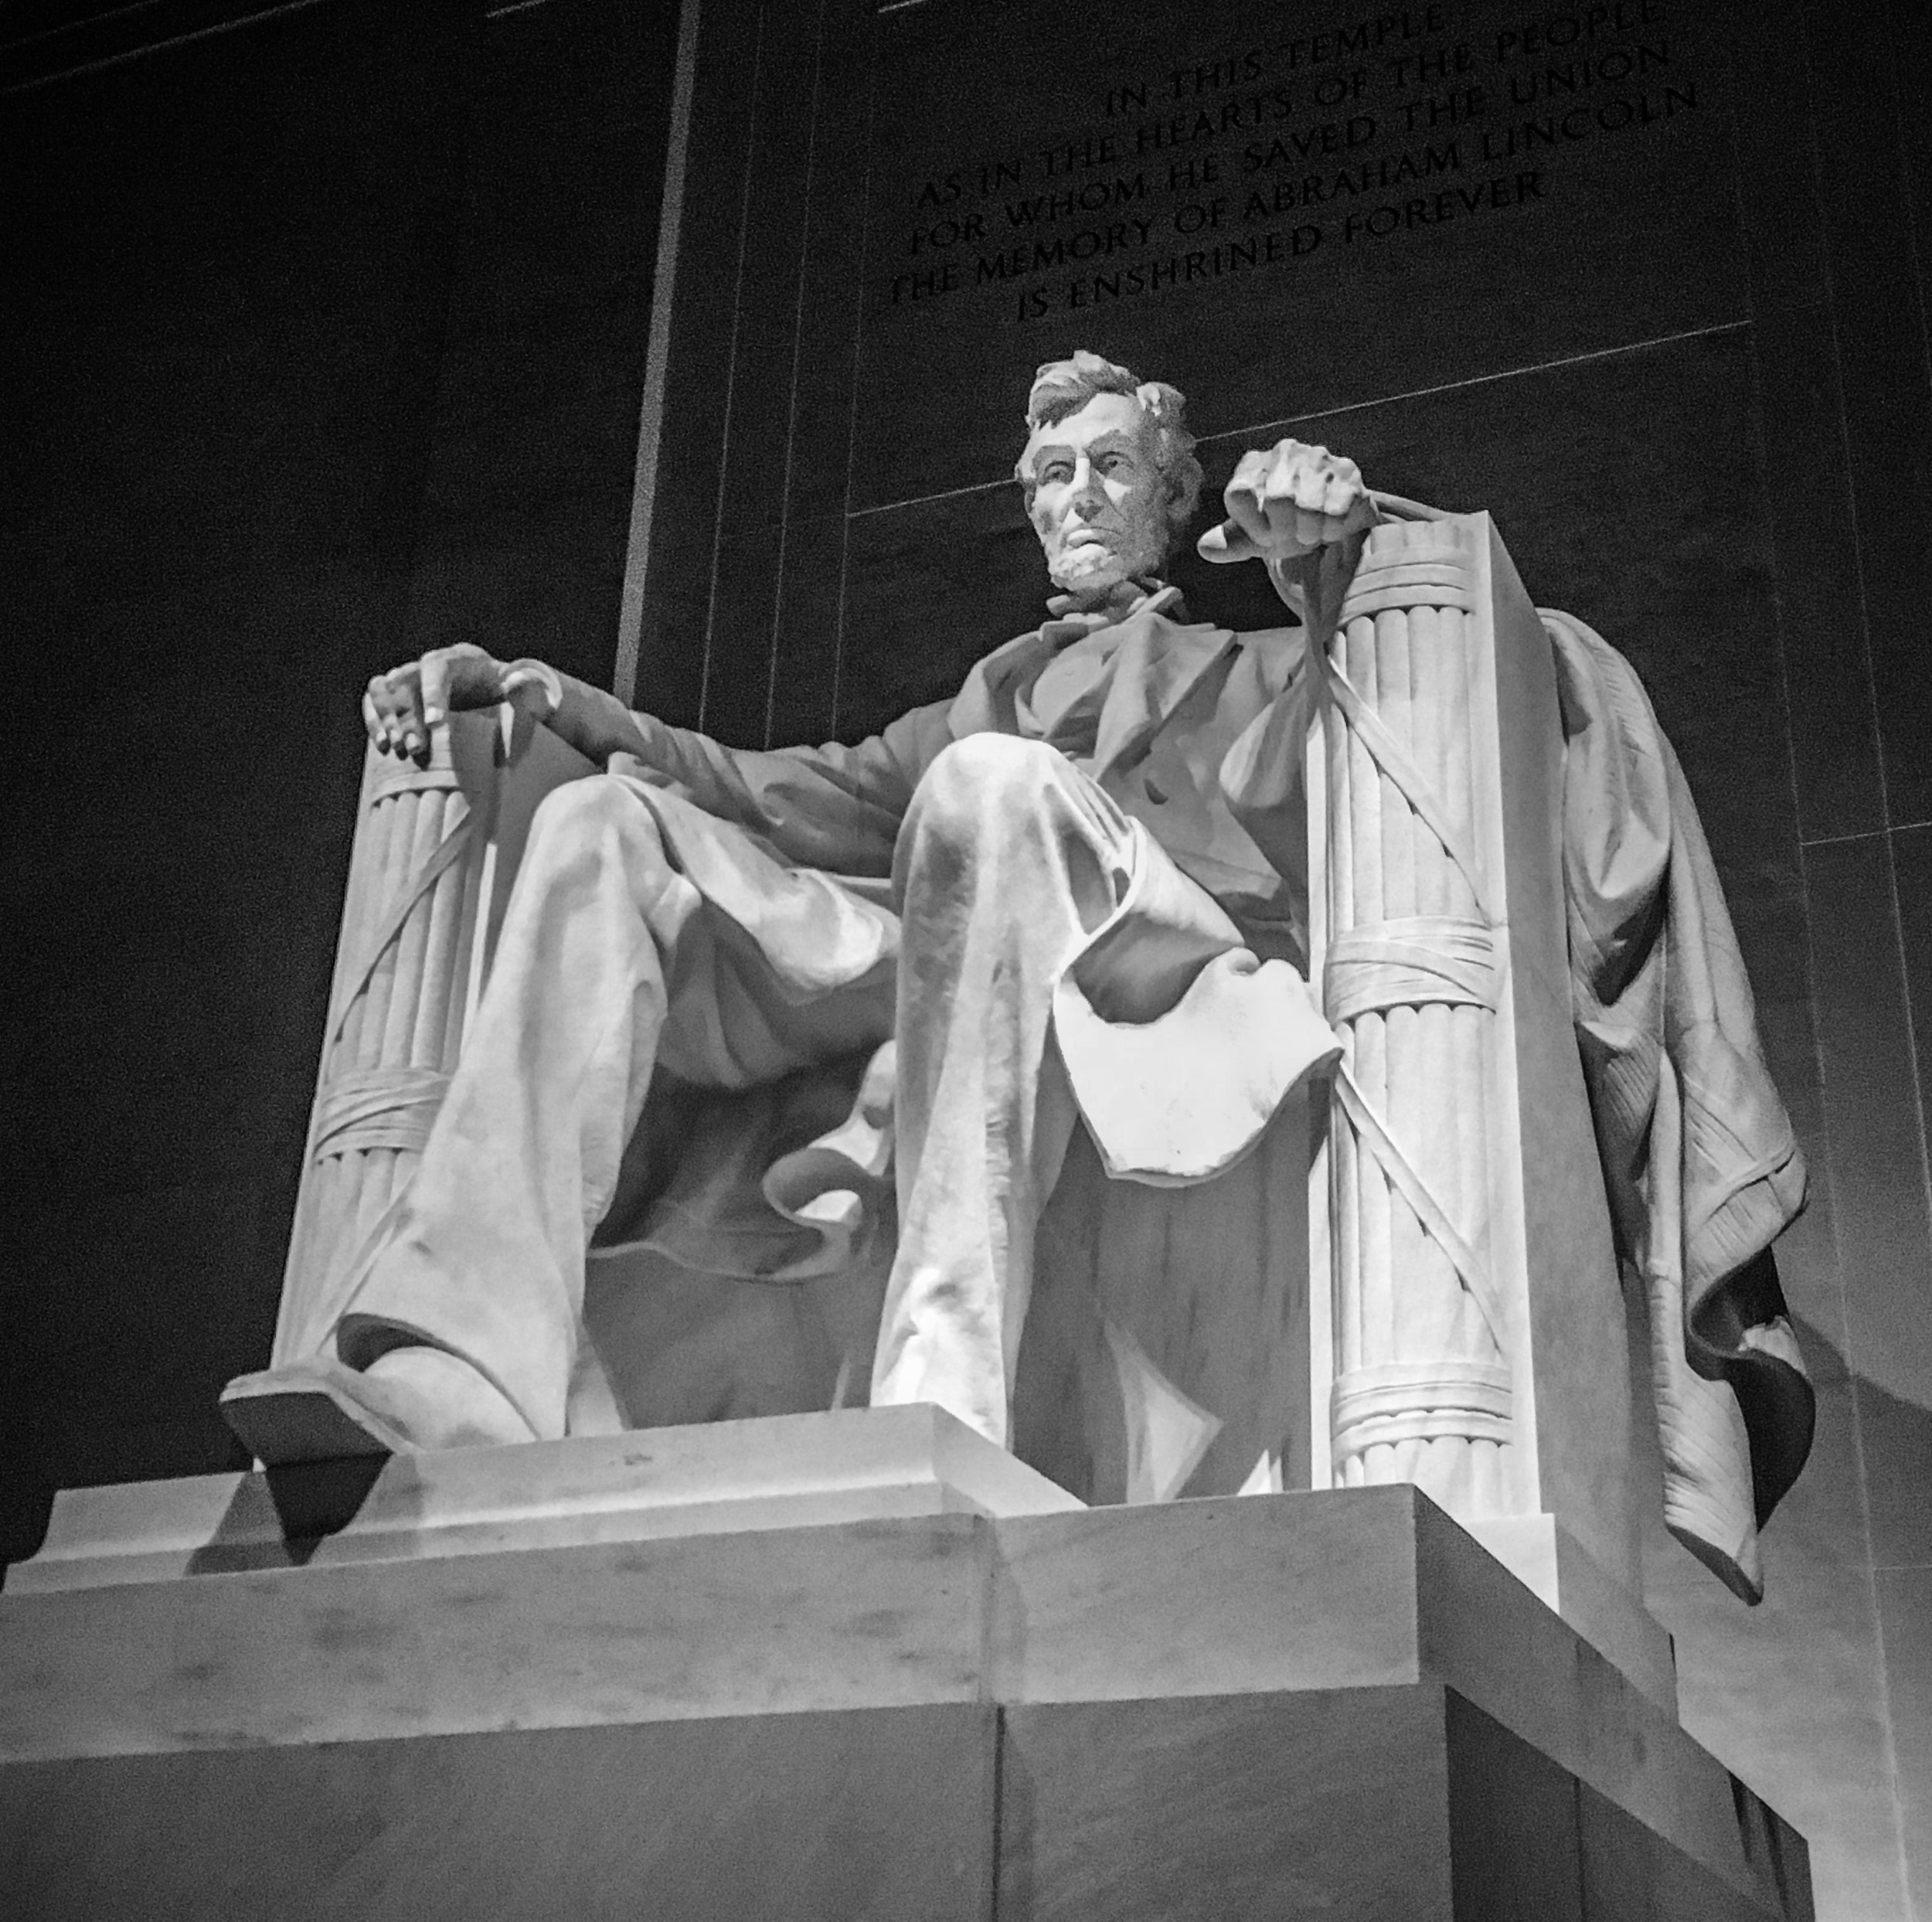 Washington DC Lincoln Memorial